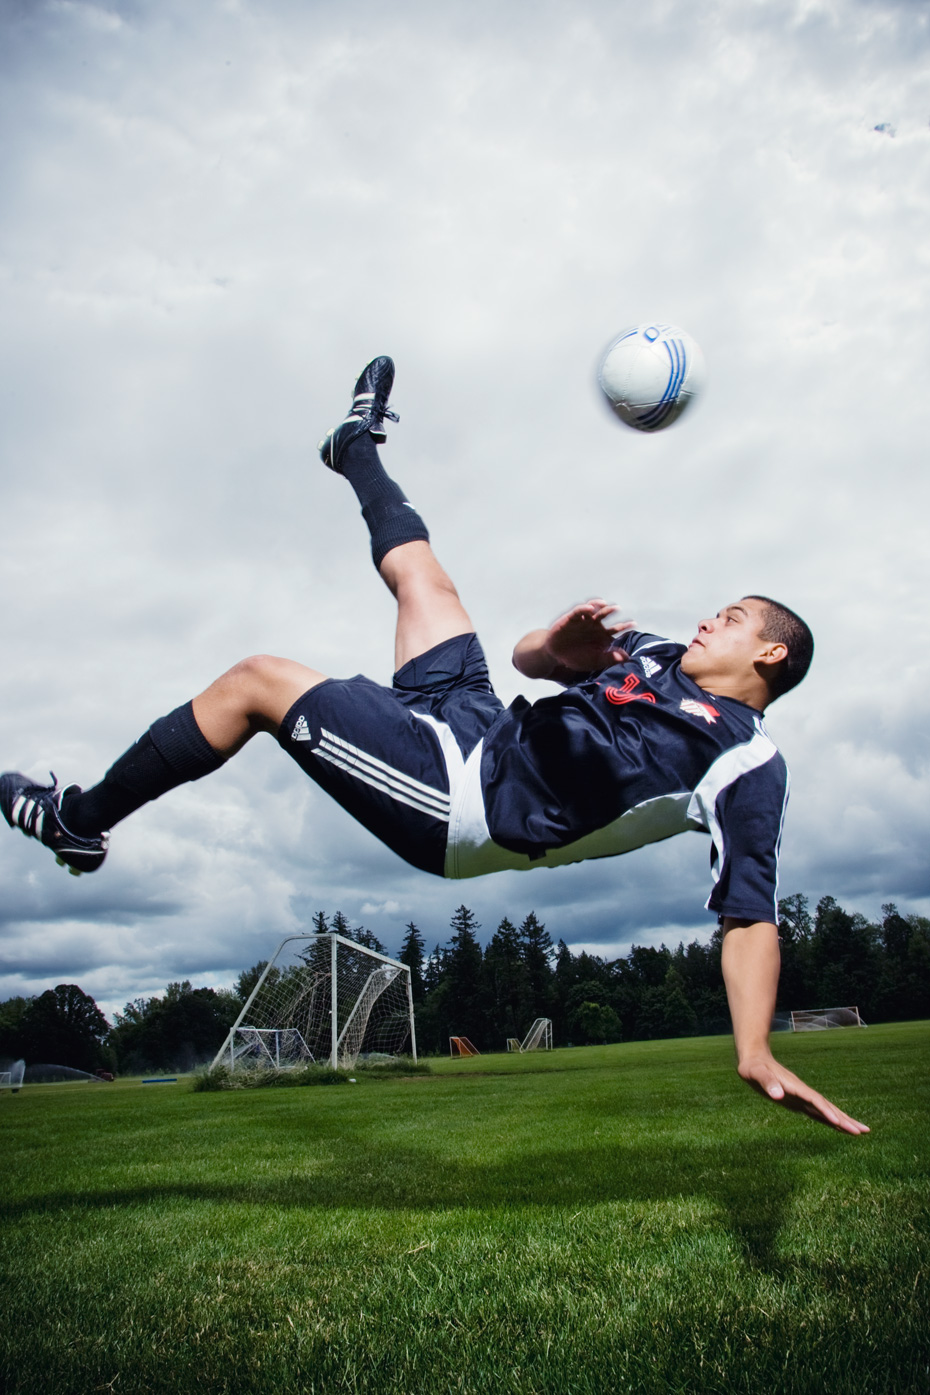 Editorial photographer Portland - soccer player doing a bicycle kick